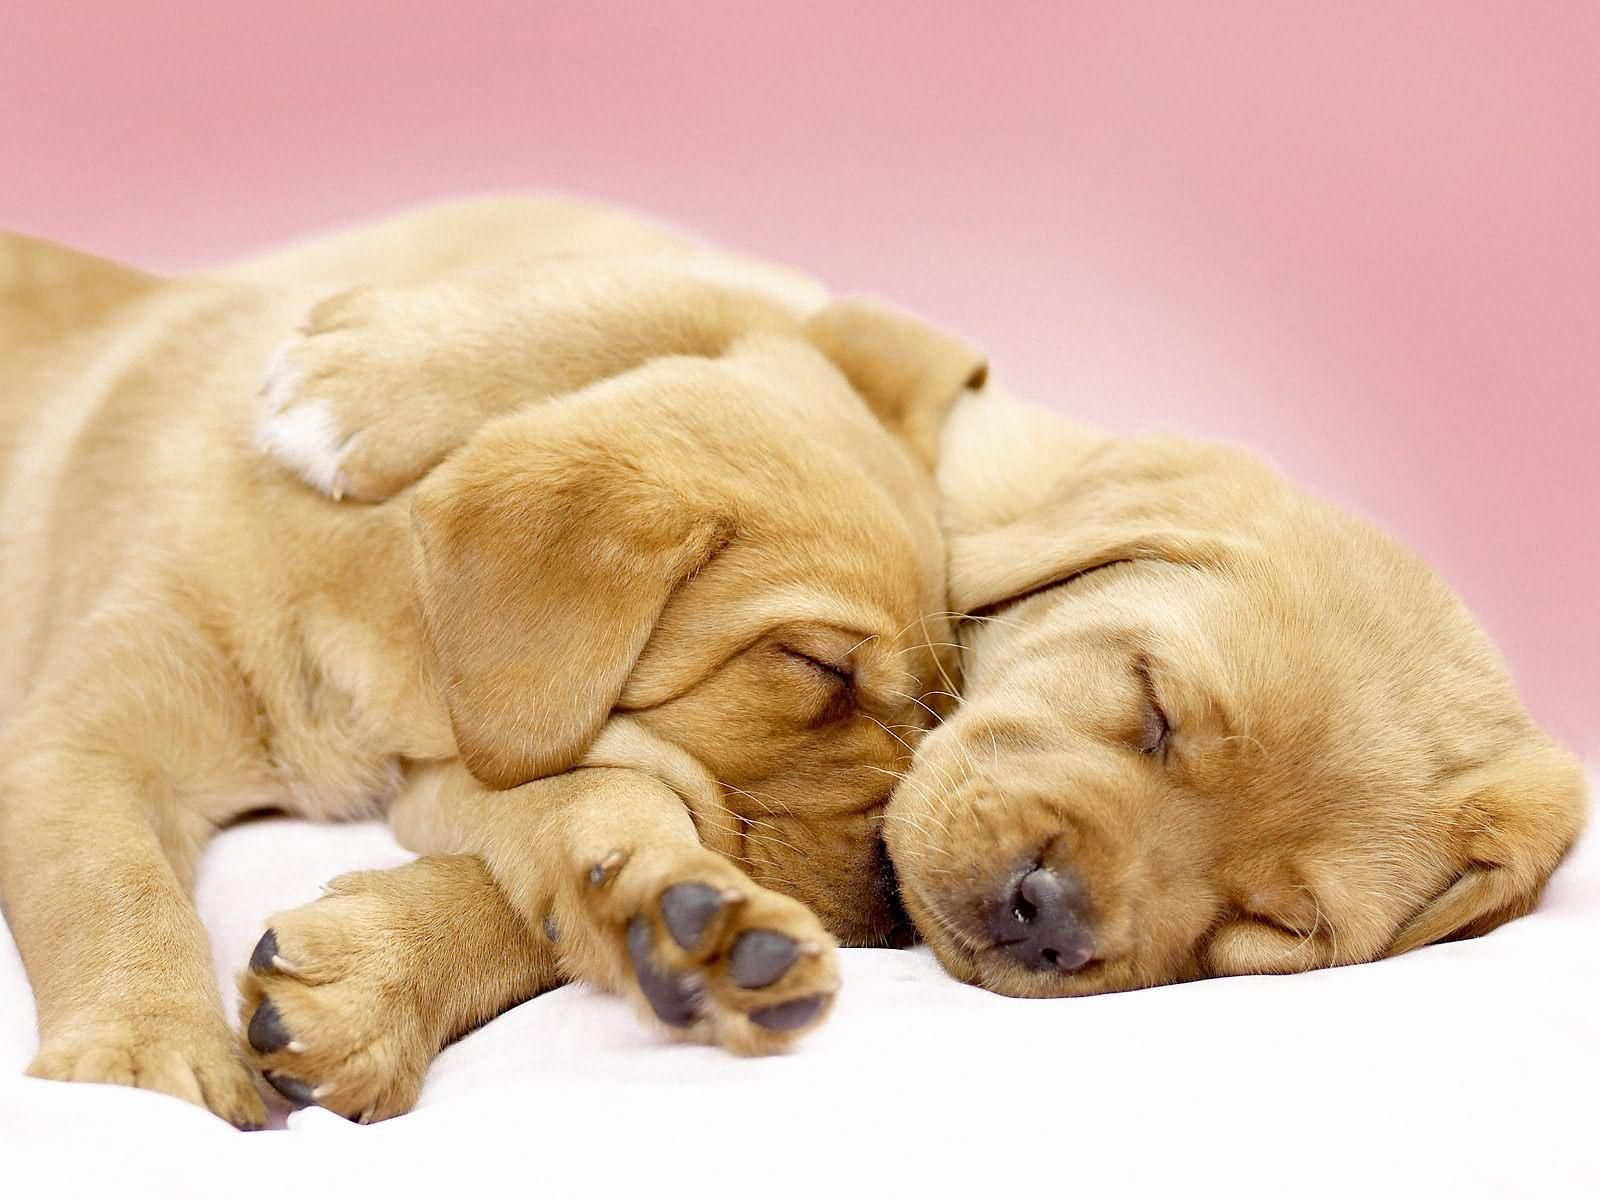 free hd dog wallpapers | hd wallpapers | pinterest | sleeping baby